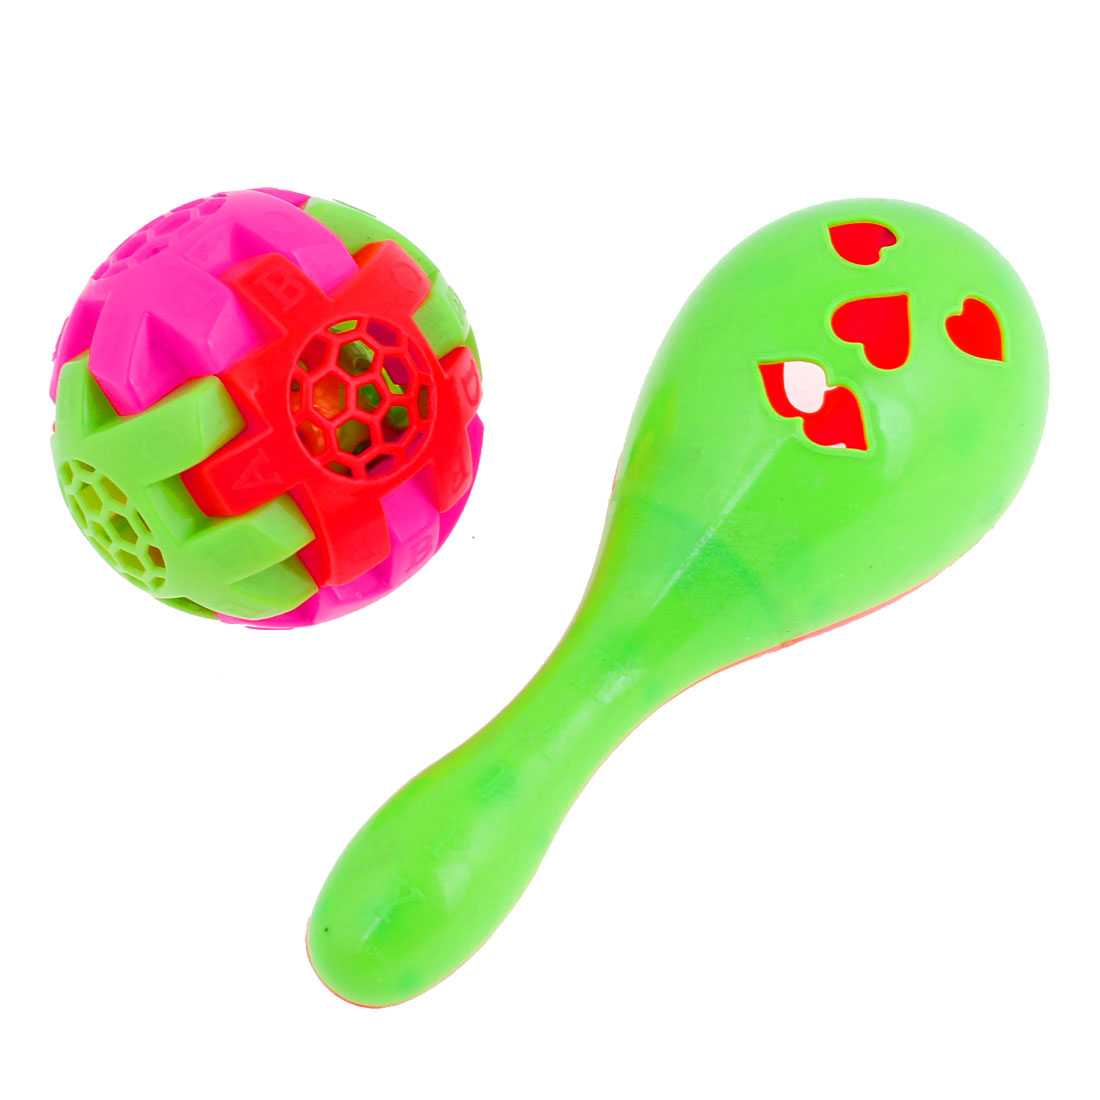 Baby Colorful Whistle Design Calabash Ball Shape Hand Shaking Bell Toy 2 Pcs